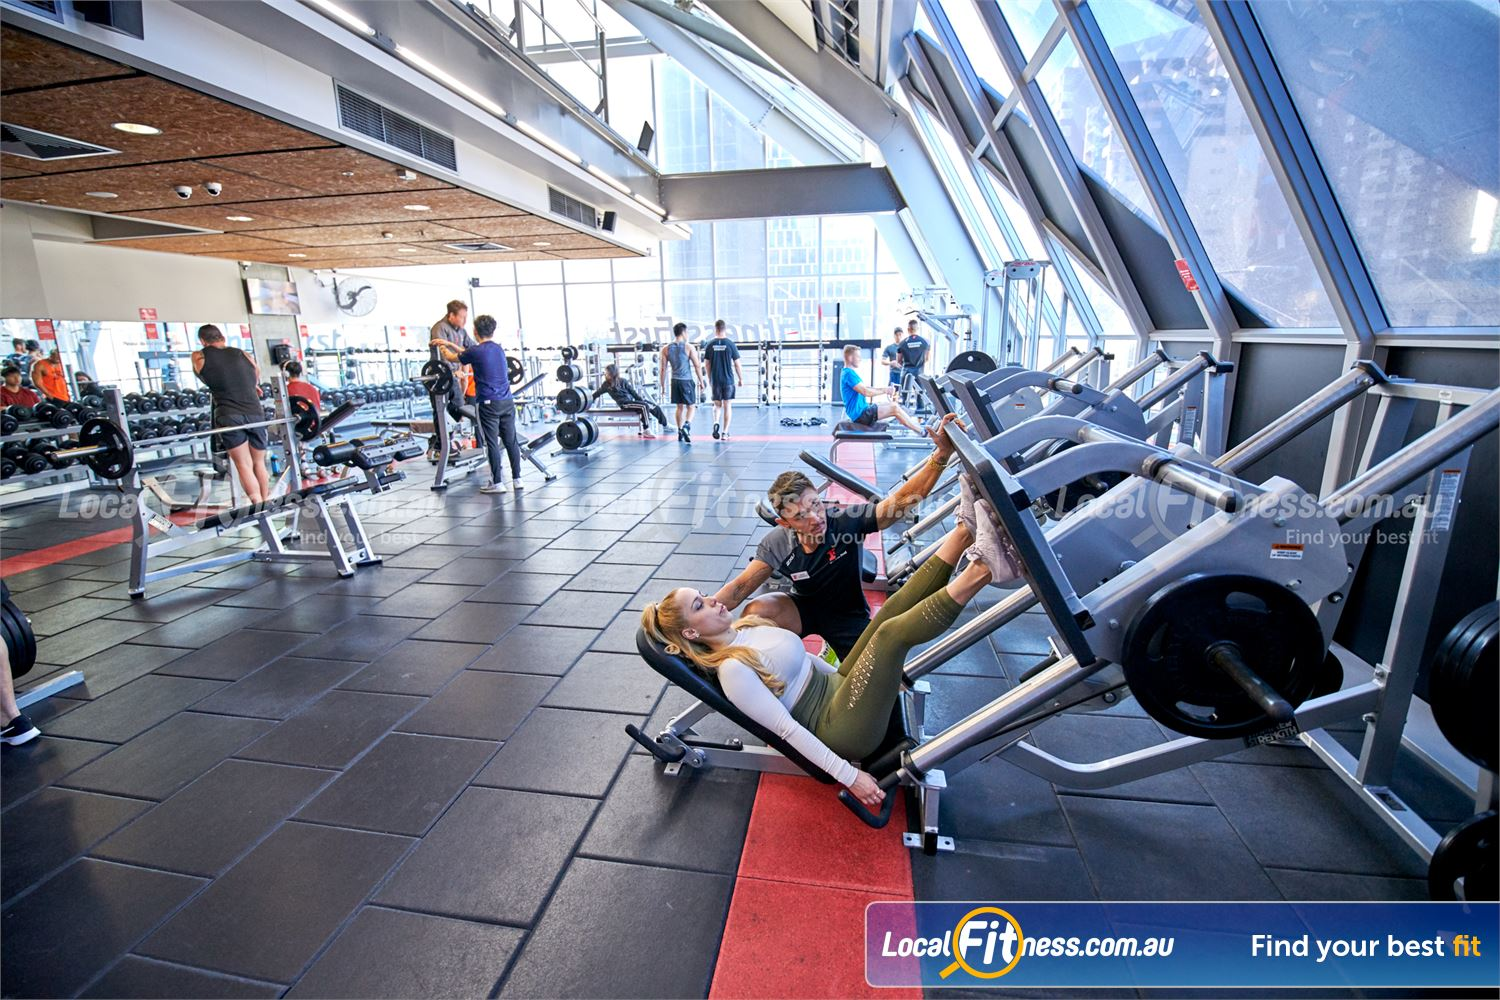 Fitness First QV Platinum Near East Melbourne Our Melbourne gym is fully equipped for leg days with our leg press.